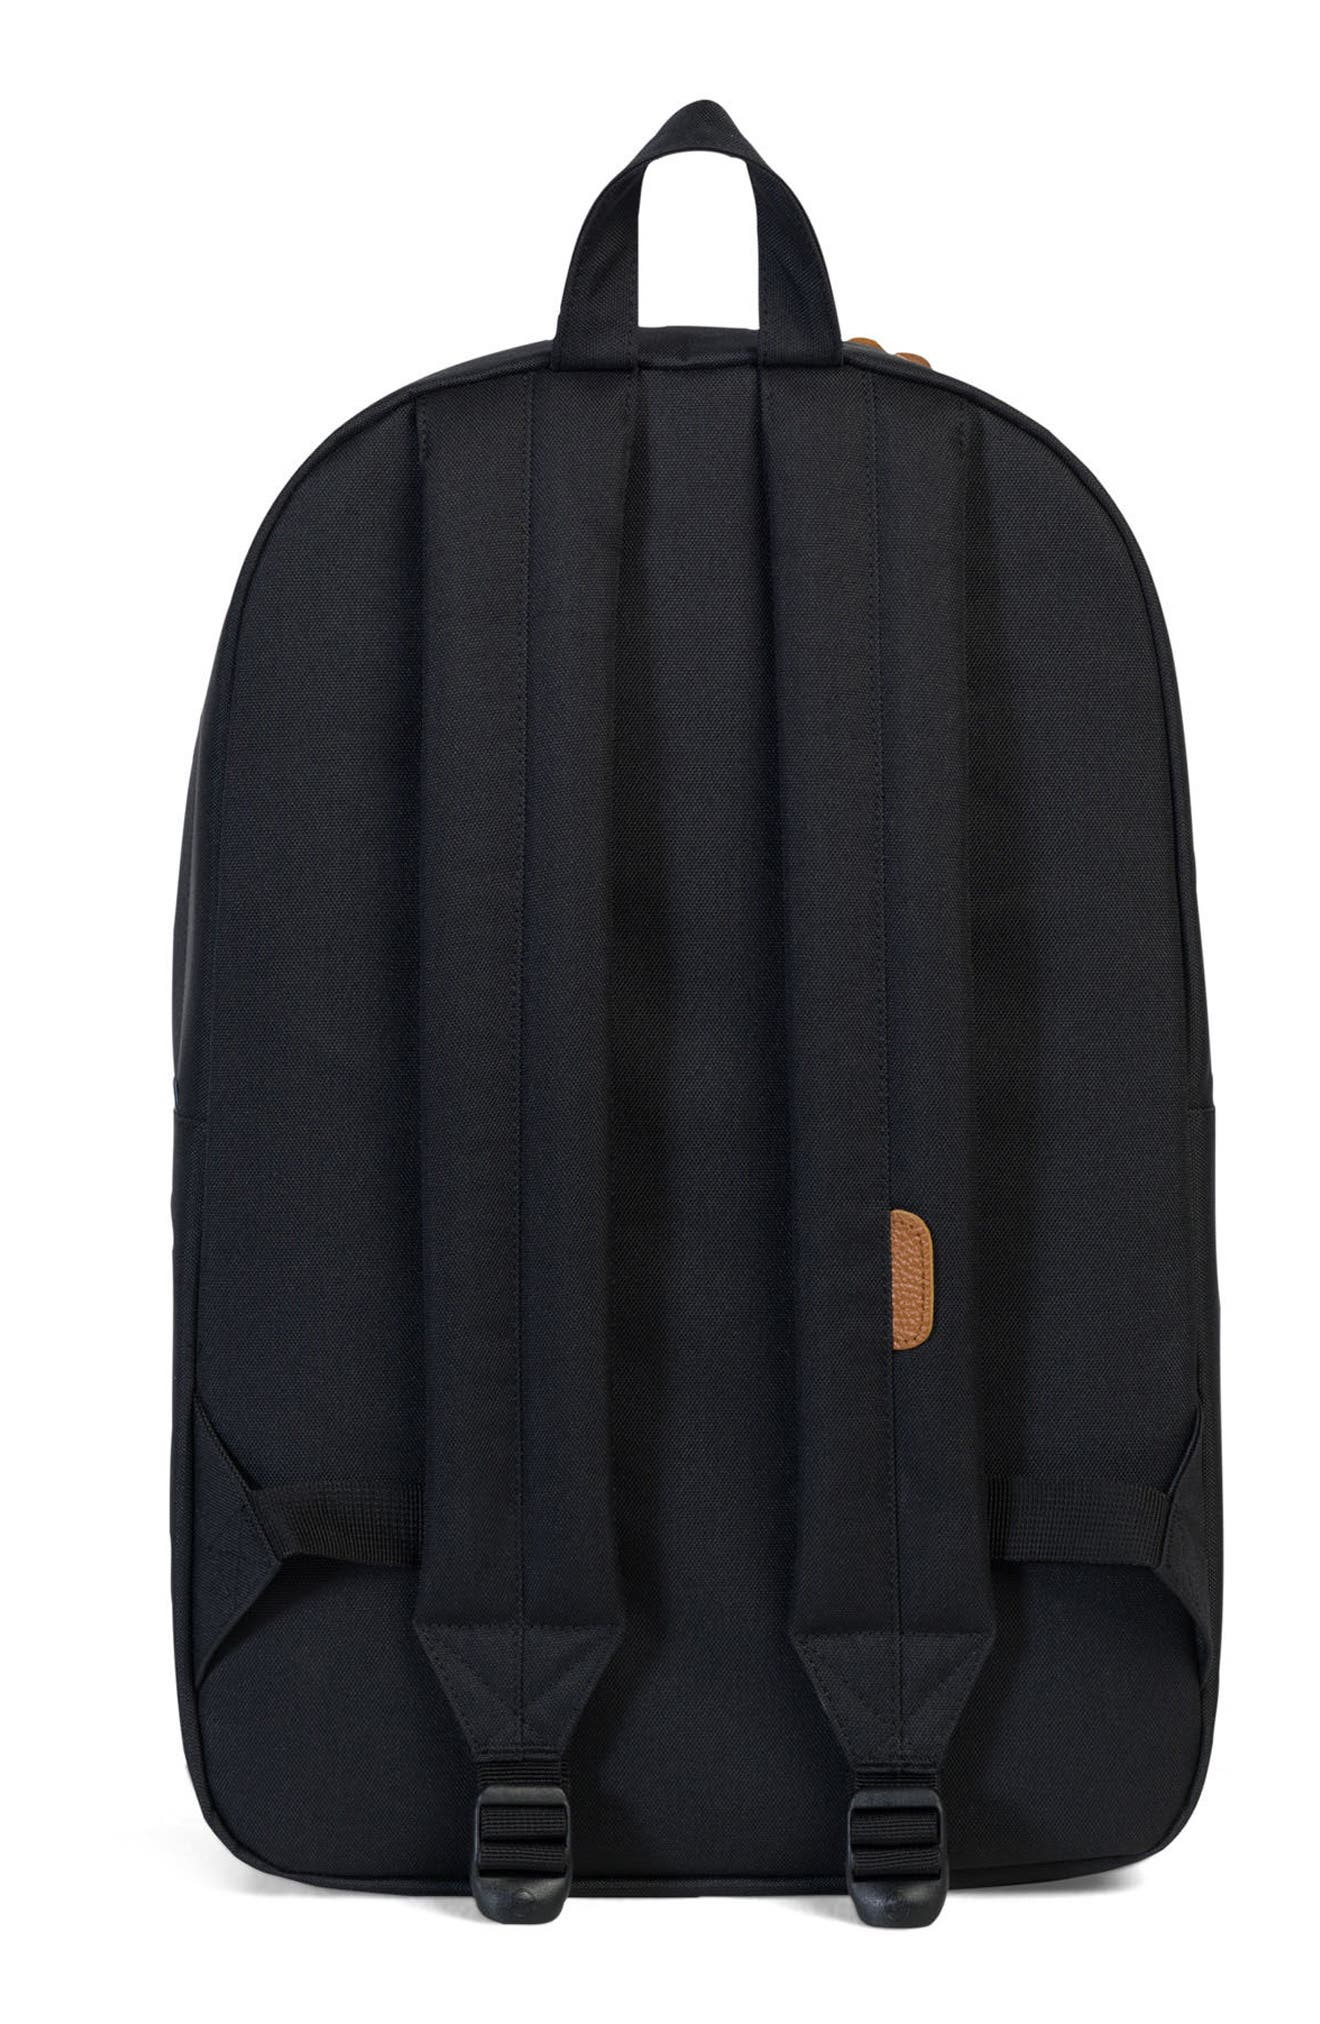 Heritage Pittsburgh Pirates Backpack,                             Alternate thumbnail 2, color,                             003